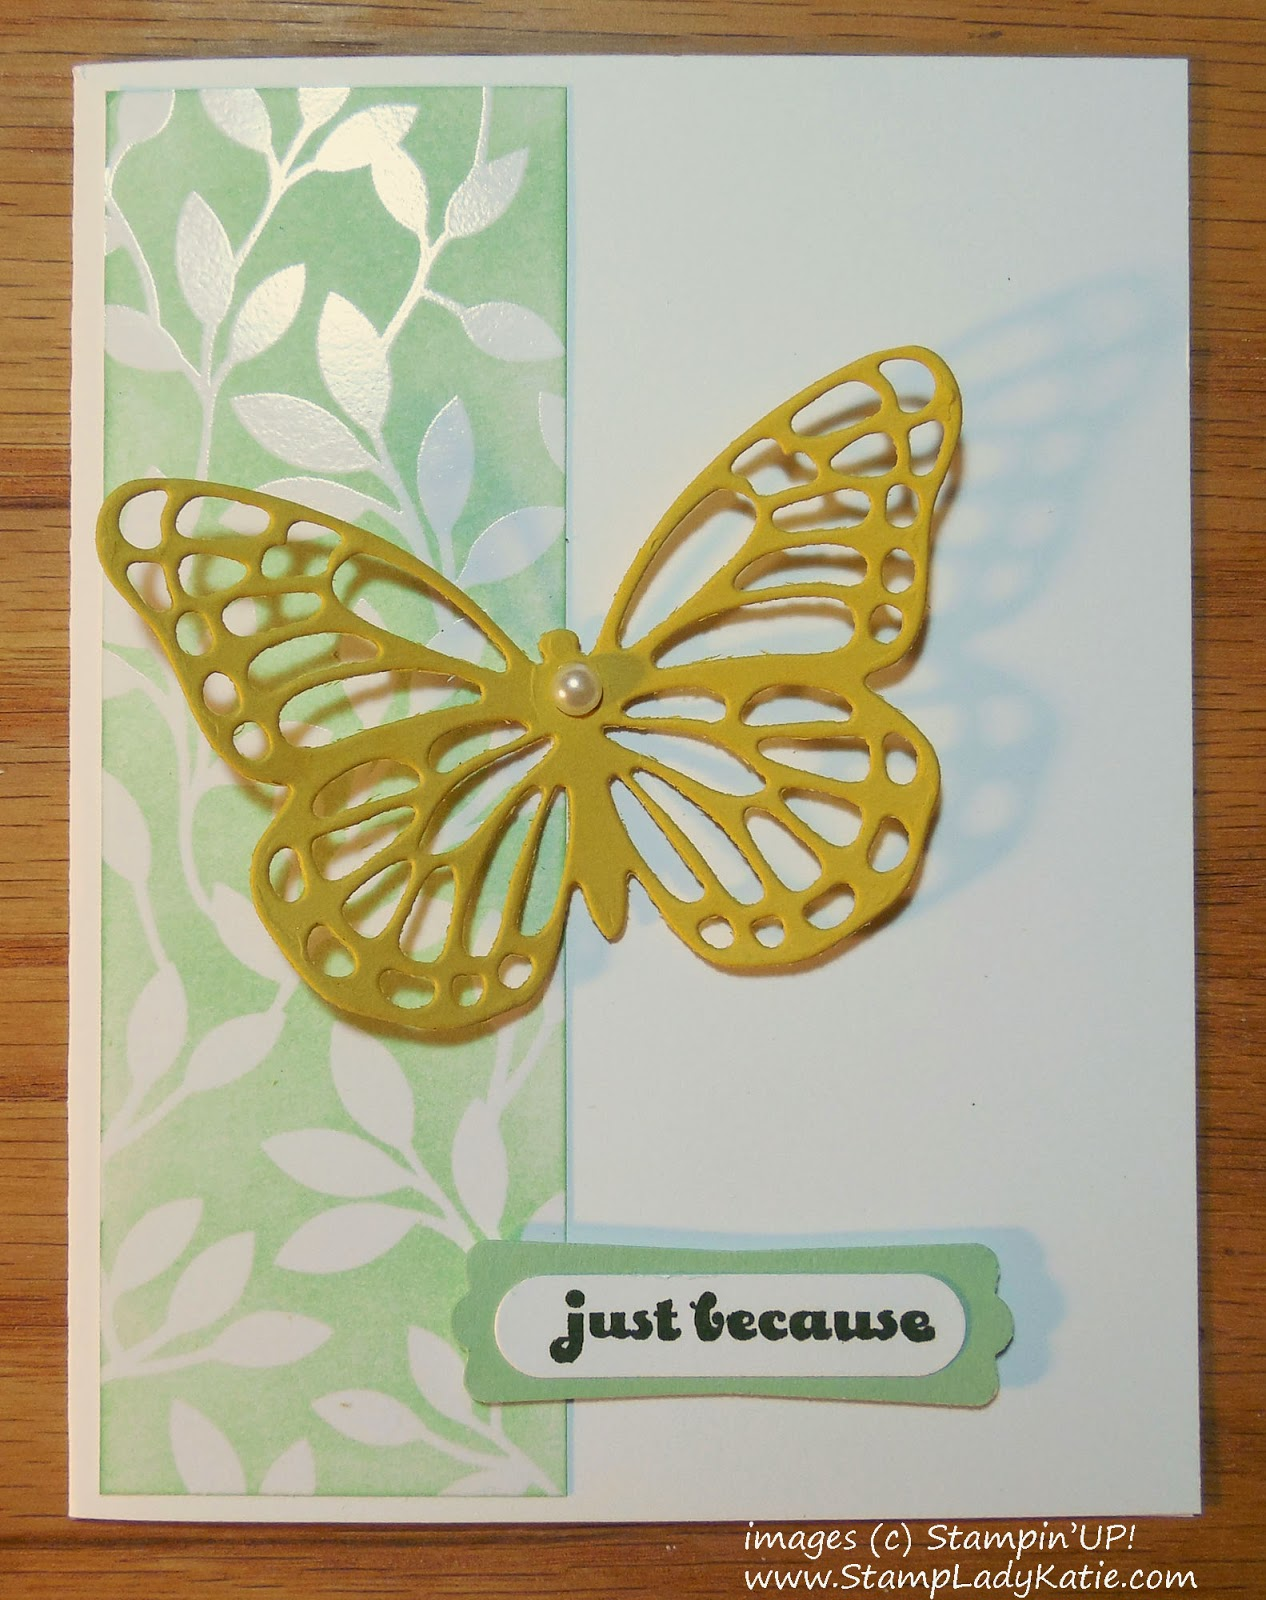 Card made with Stampin'UP!'s Card made with Stampin'UP!'s Butterfly Framelits Dies and Irresistibly Yours DSP